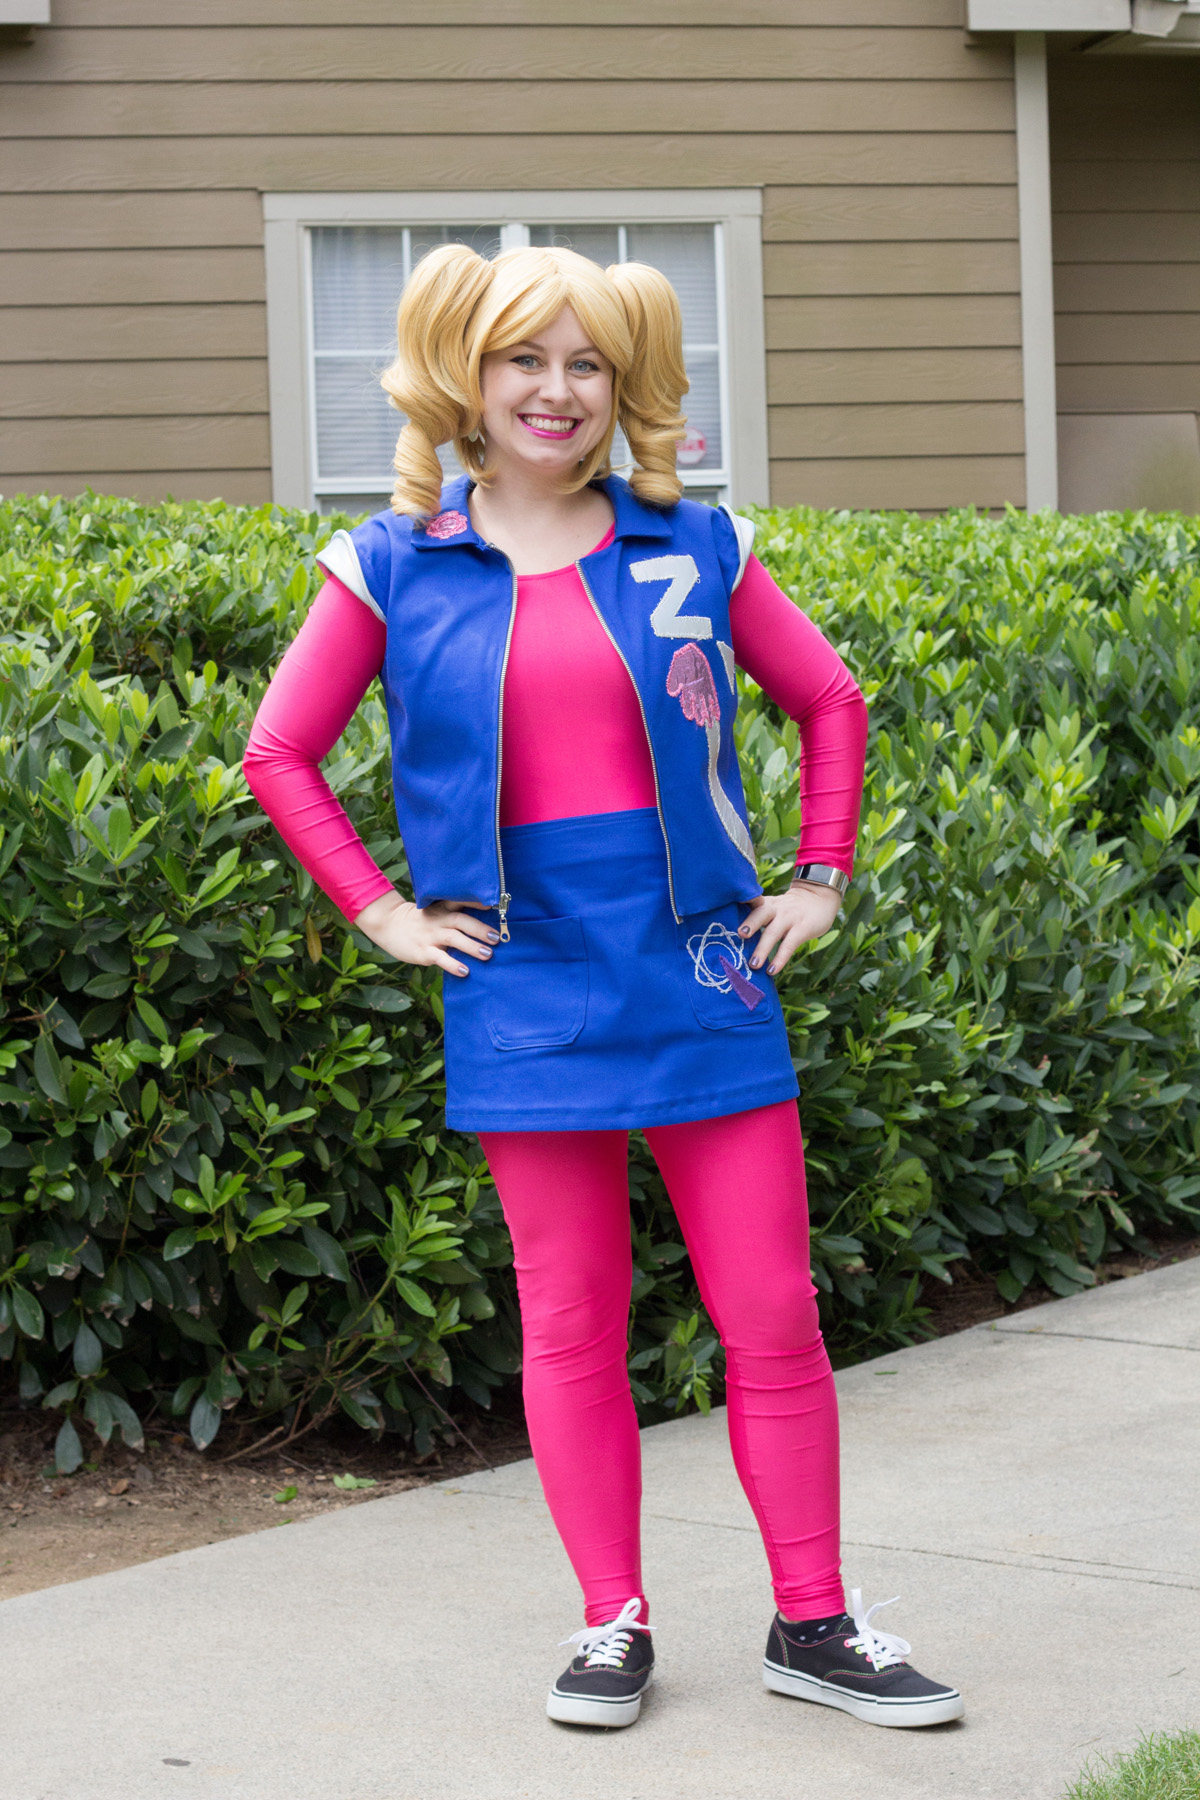 Zenon Disney Channel Original Movie Costume